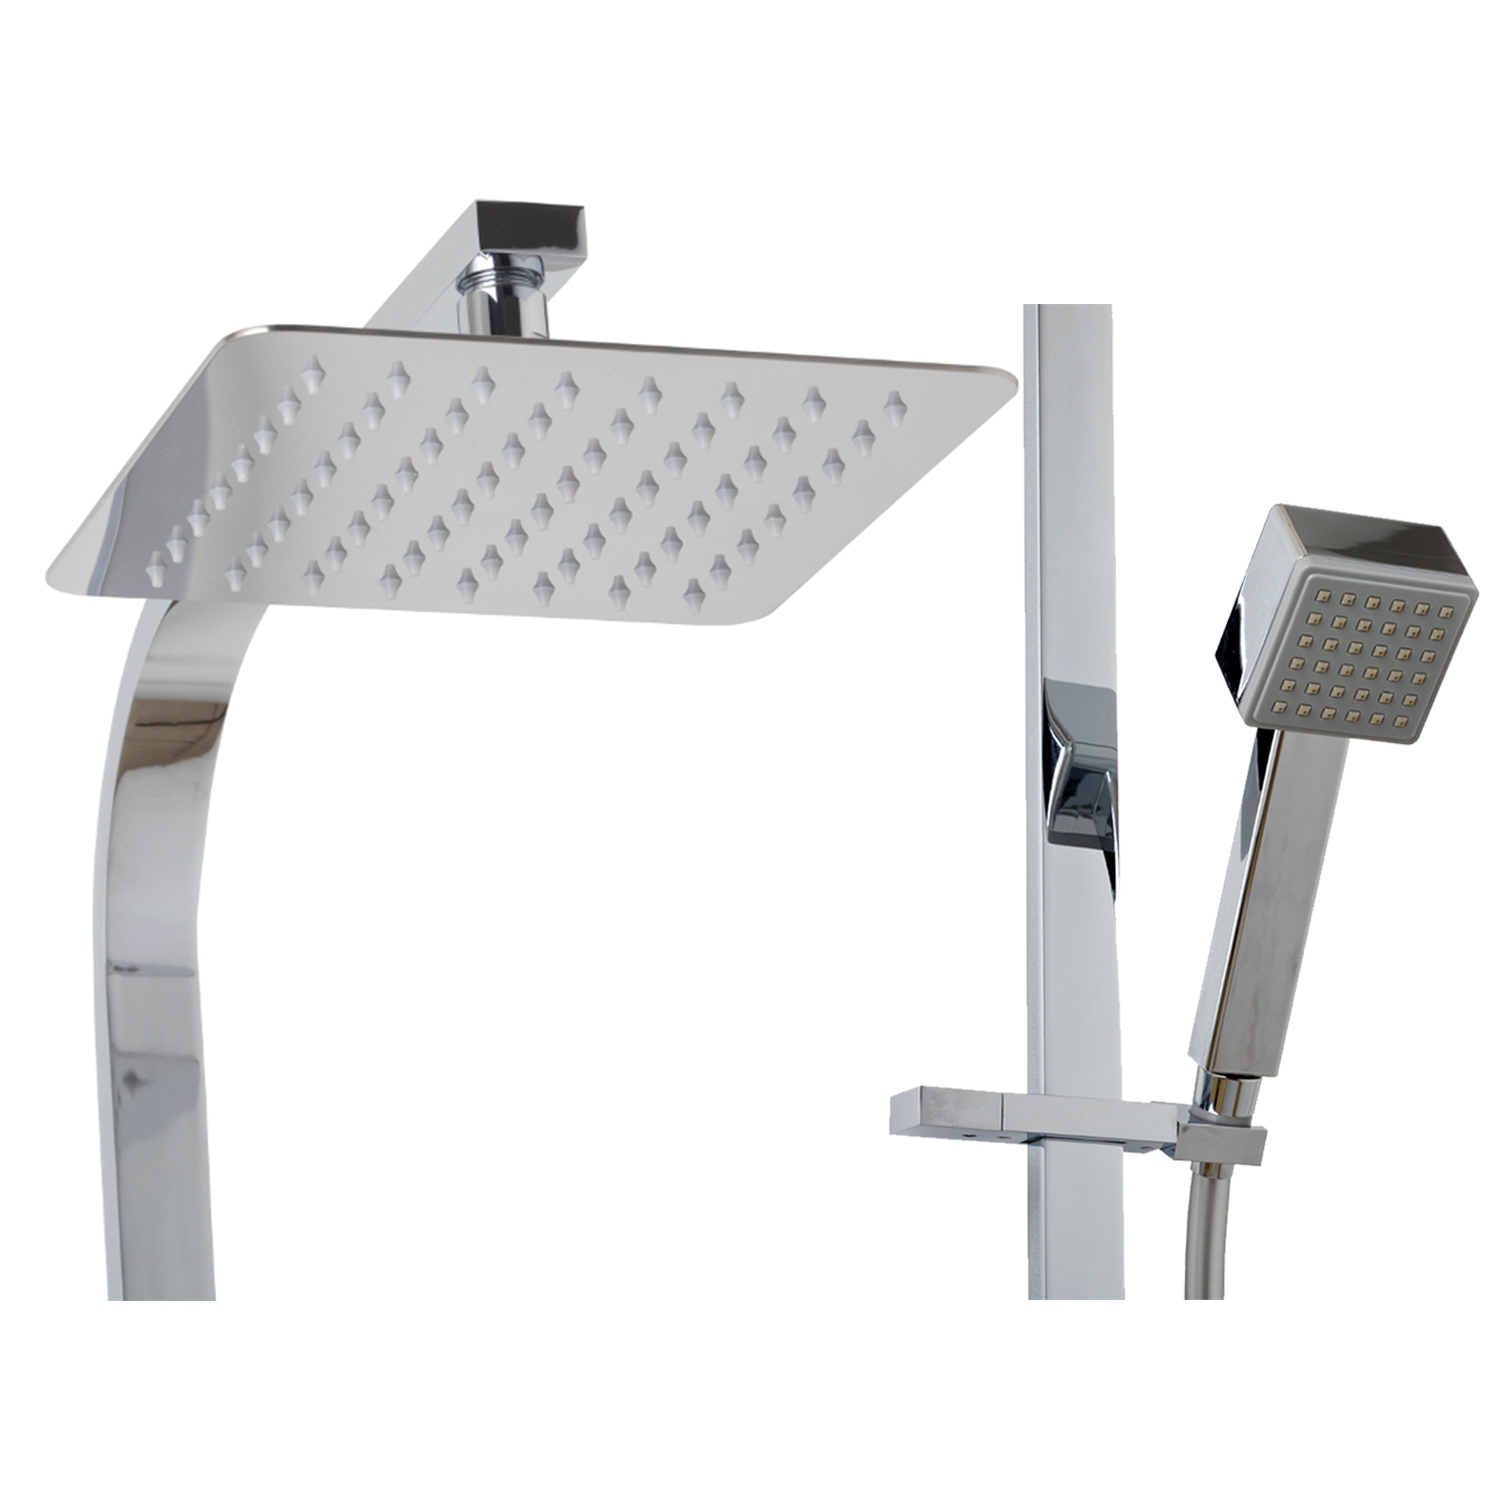 Vale square rain shower and rail set